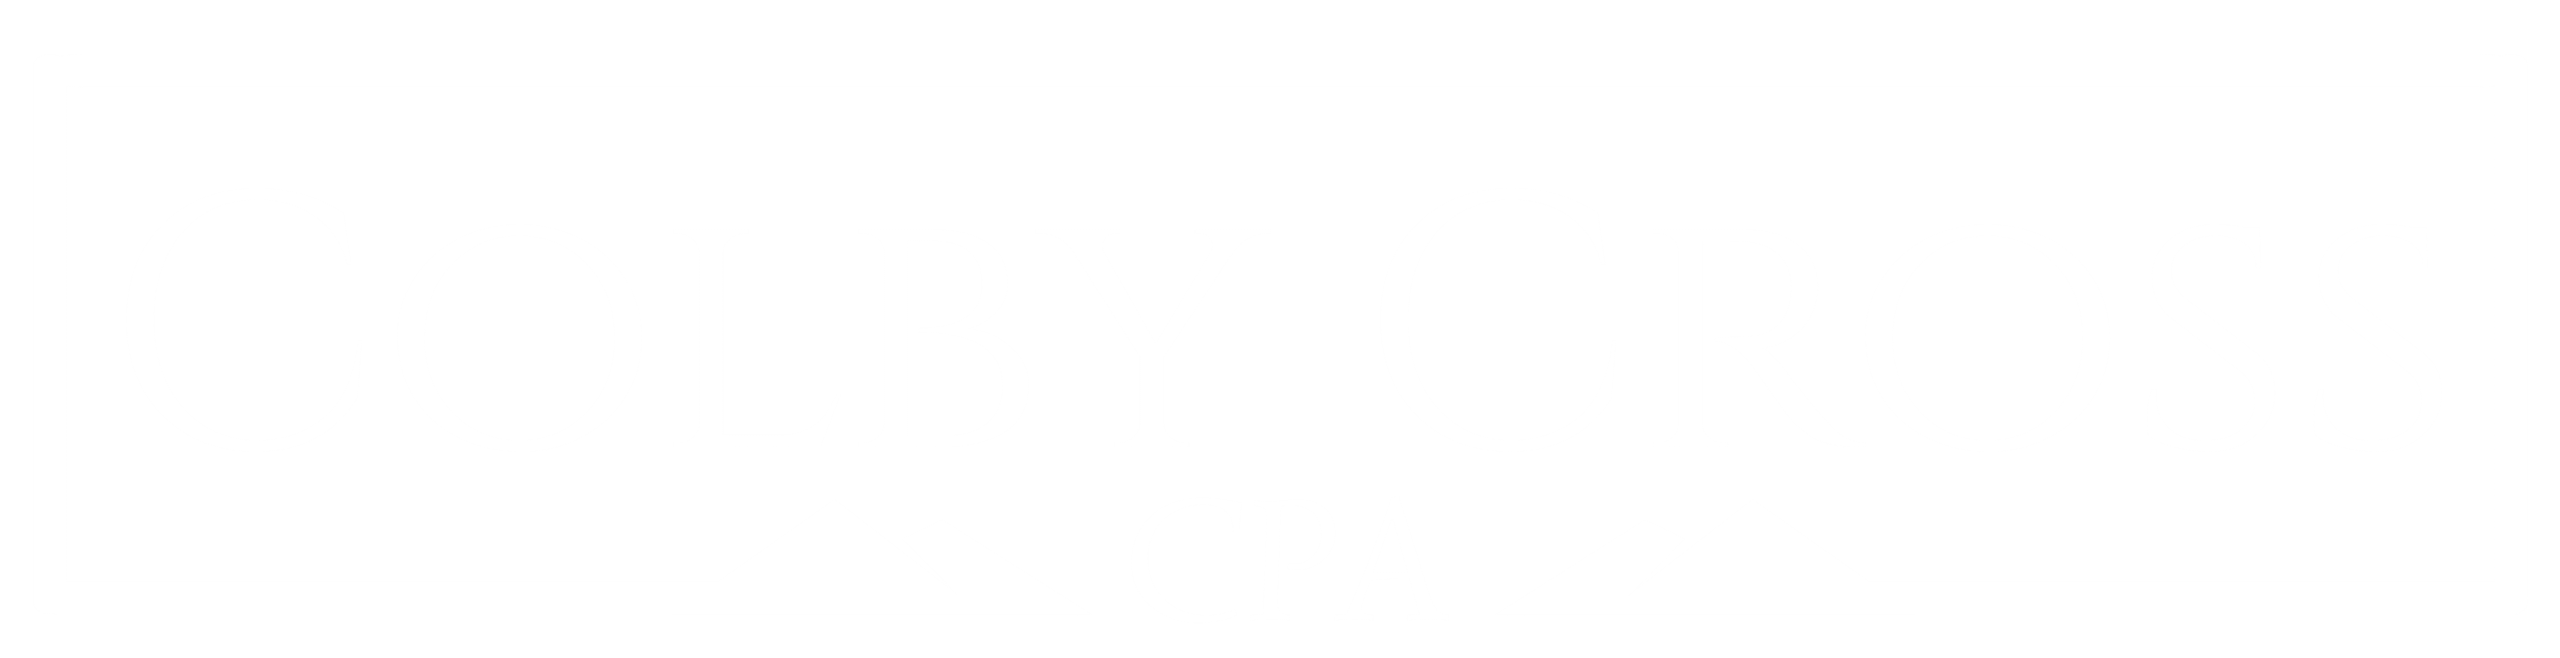 Colby Cross | CPA